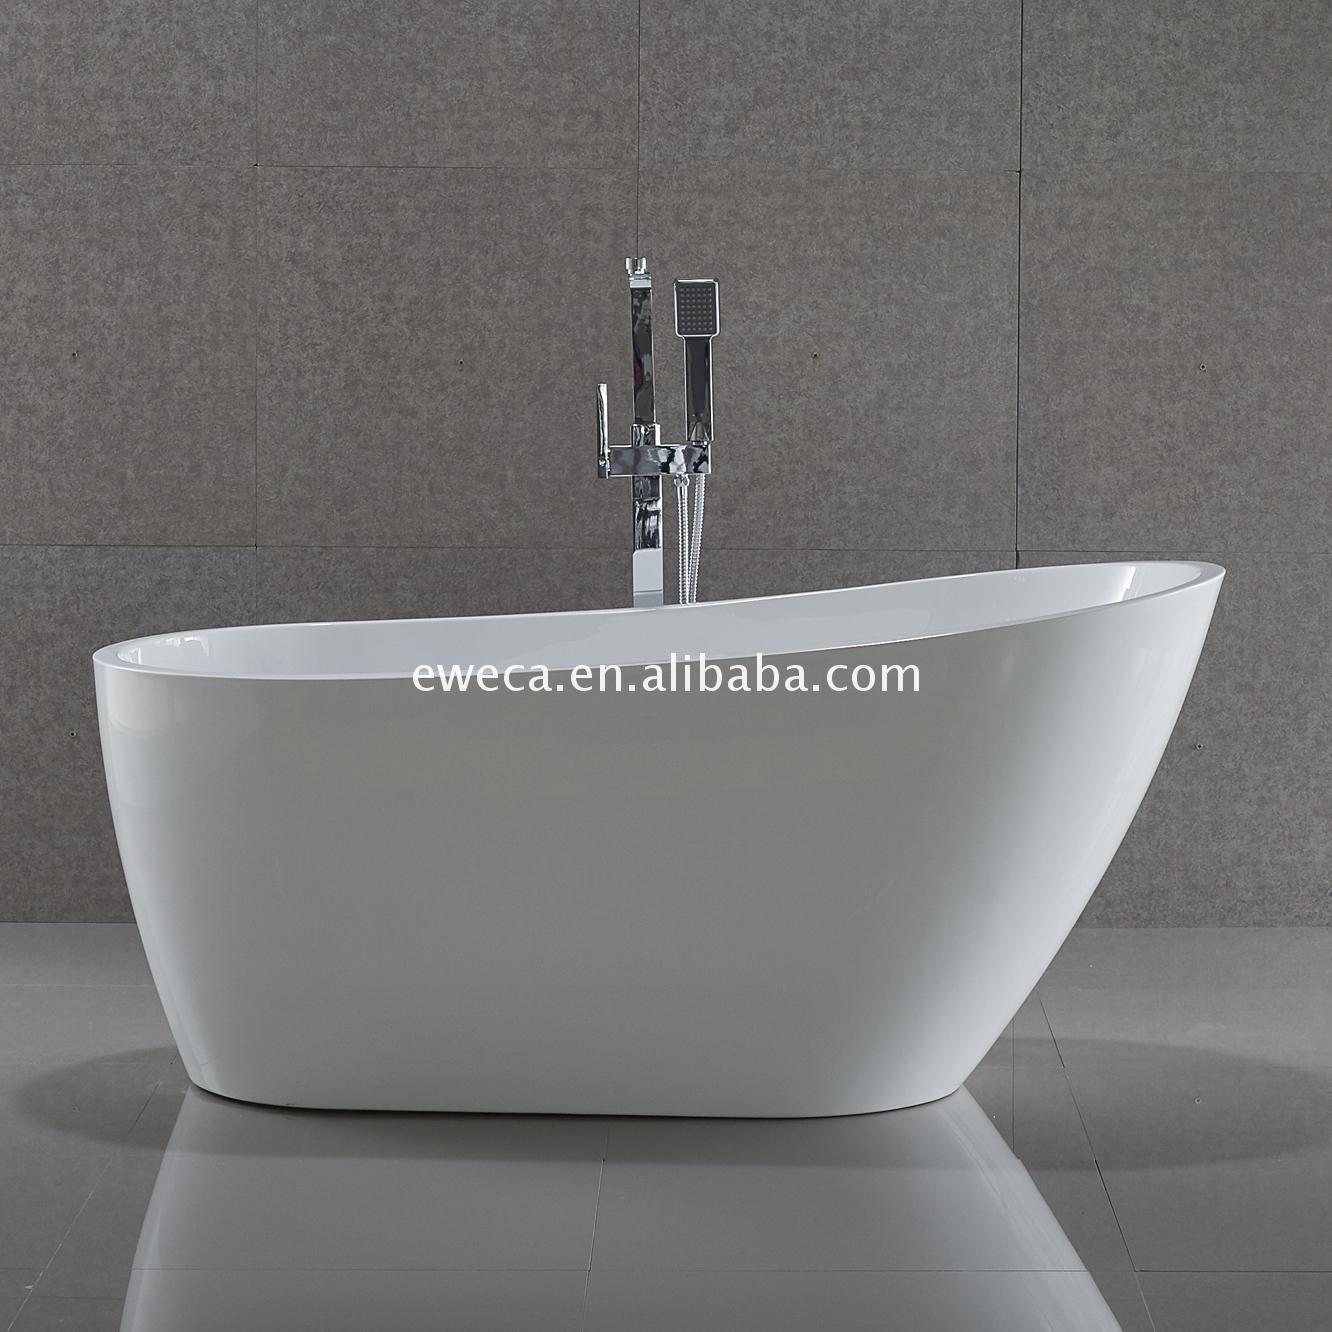 Factory direct best quality copper bath tub on sale